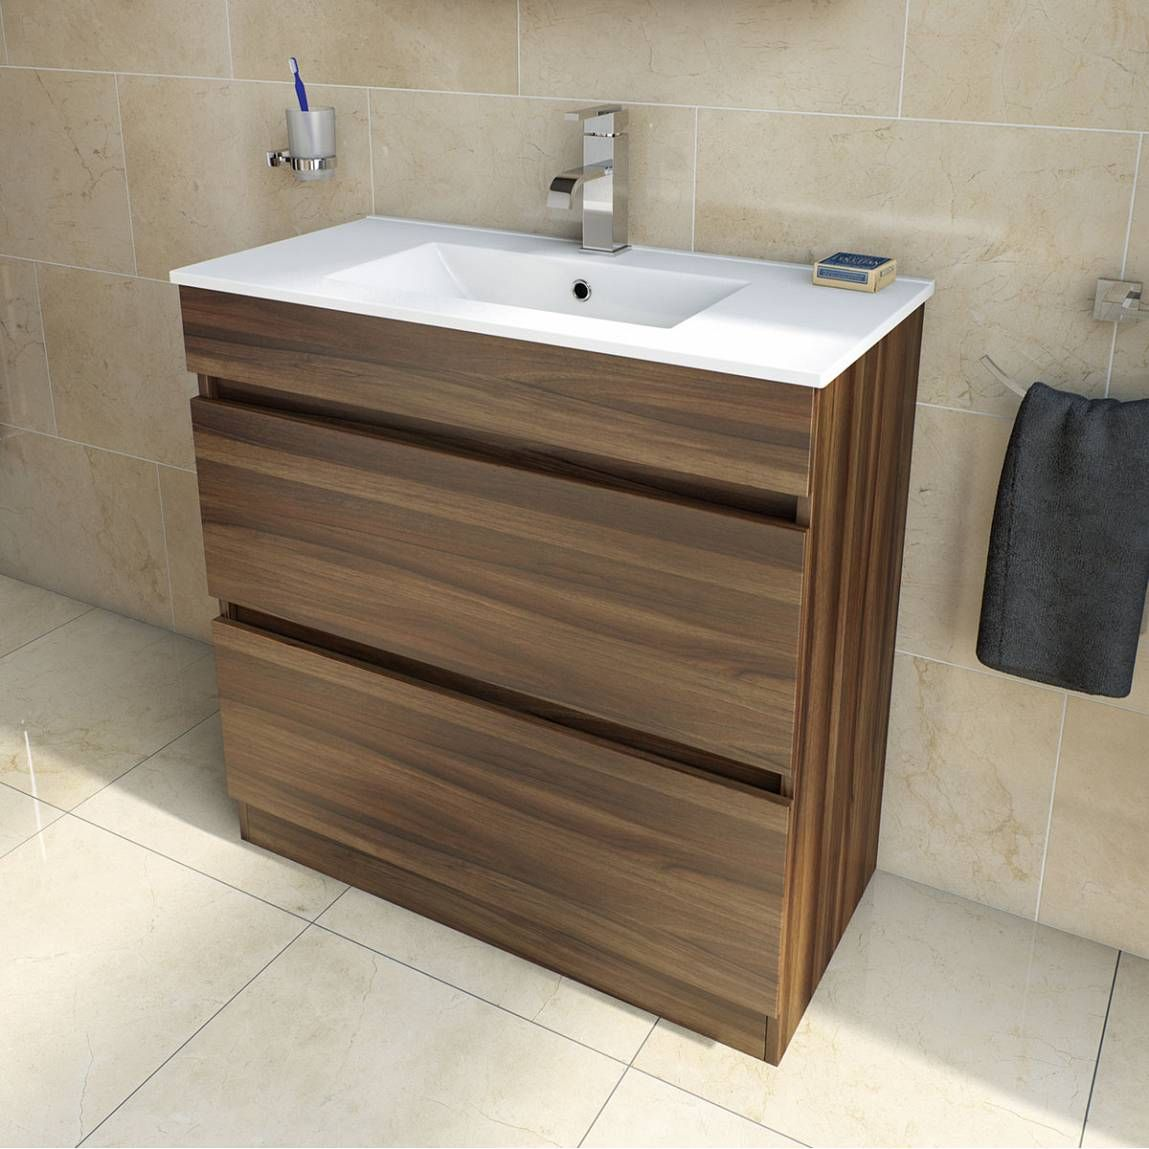 Plan Walnut Floor Mounted 800 Drawer Unit Inset Basin Victoria Plumb New Bathroom